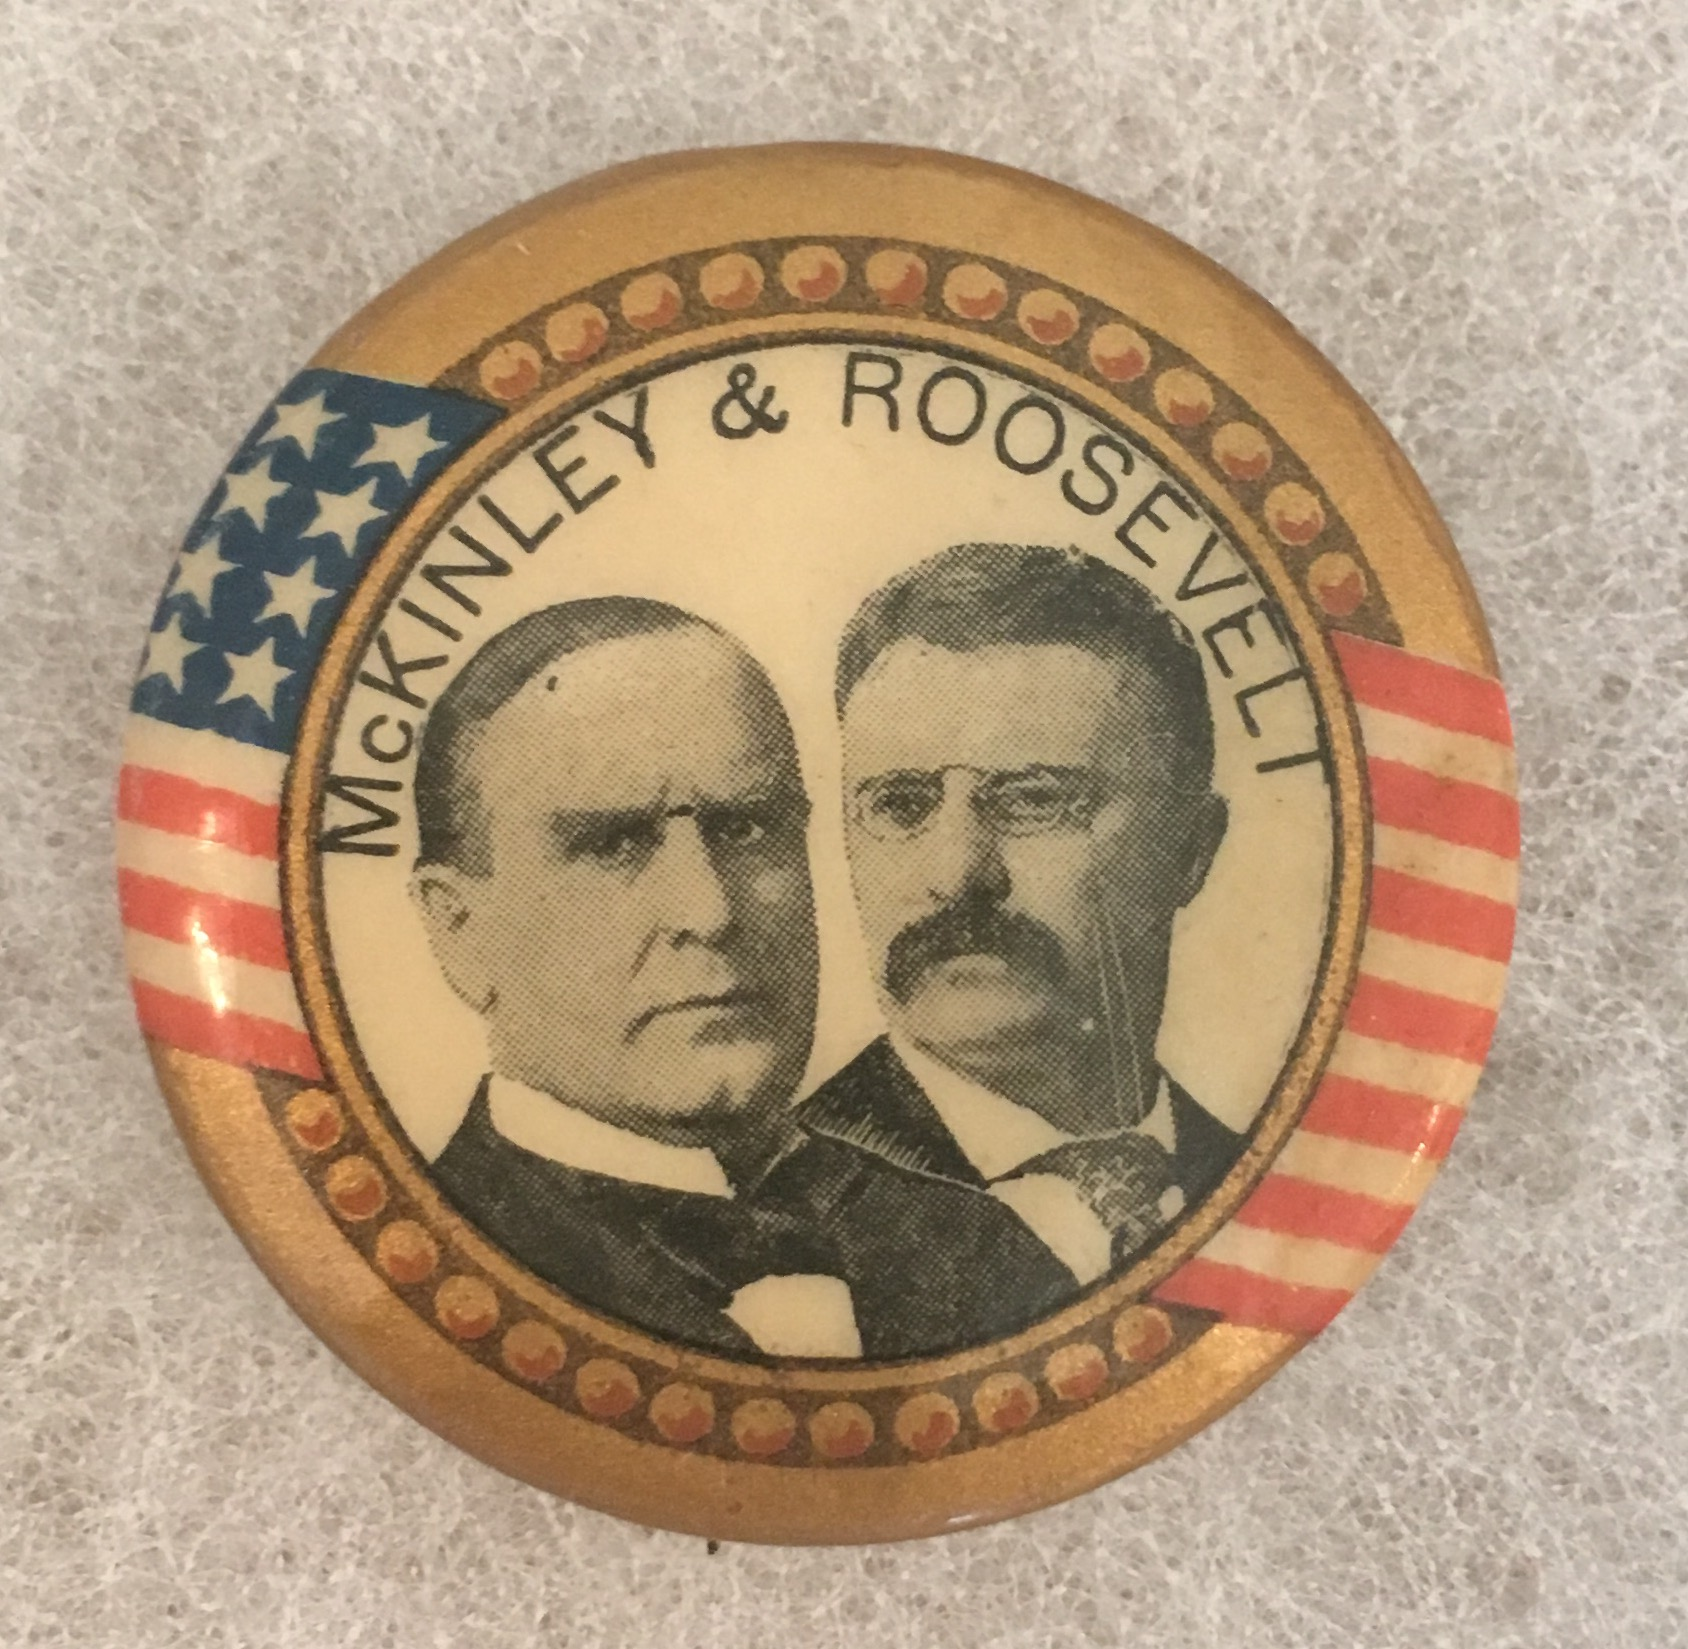 bd41a98670d 1 - 1 4 inch McKinley and Roosevelt celluloid campaign button ...